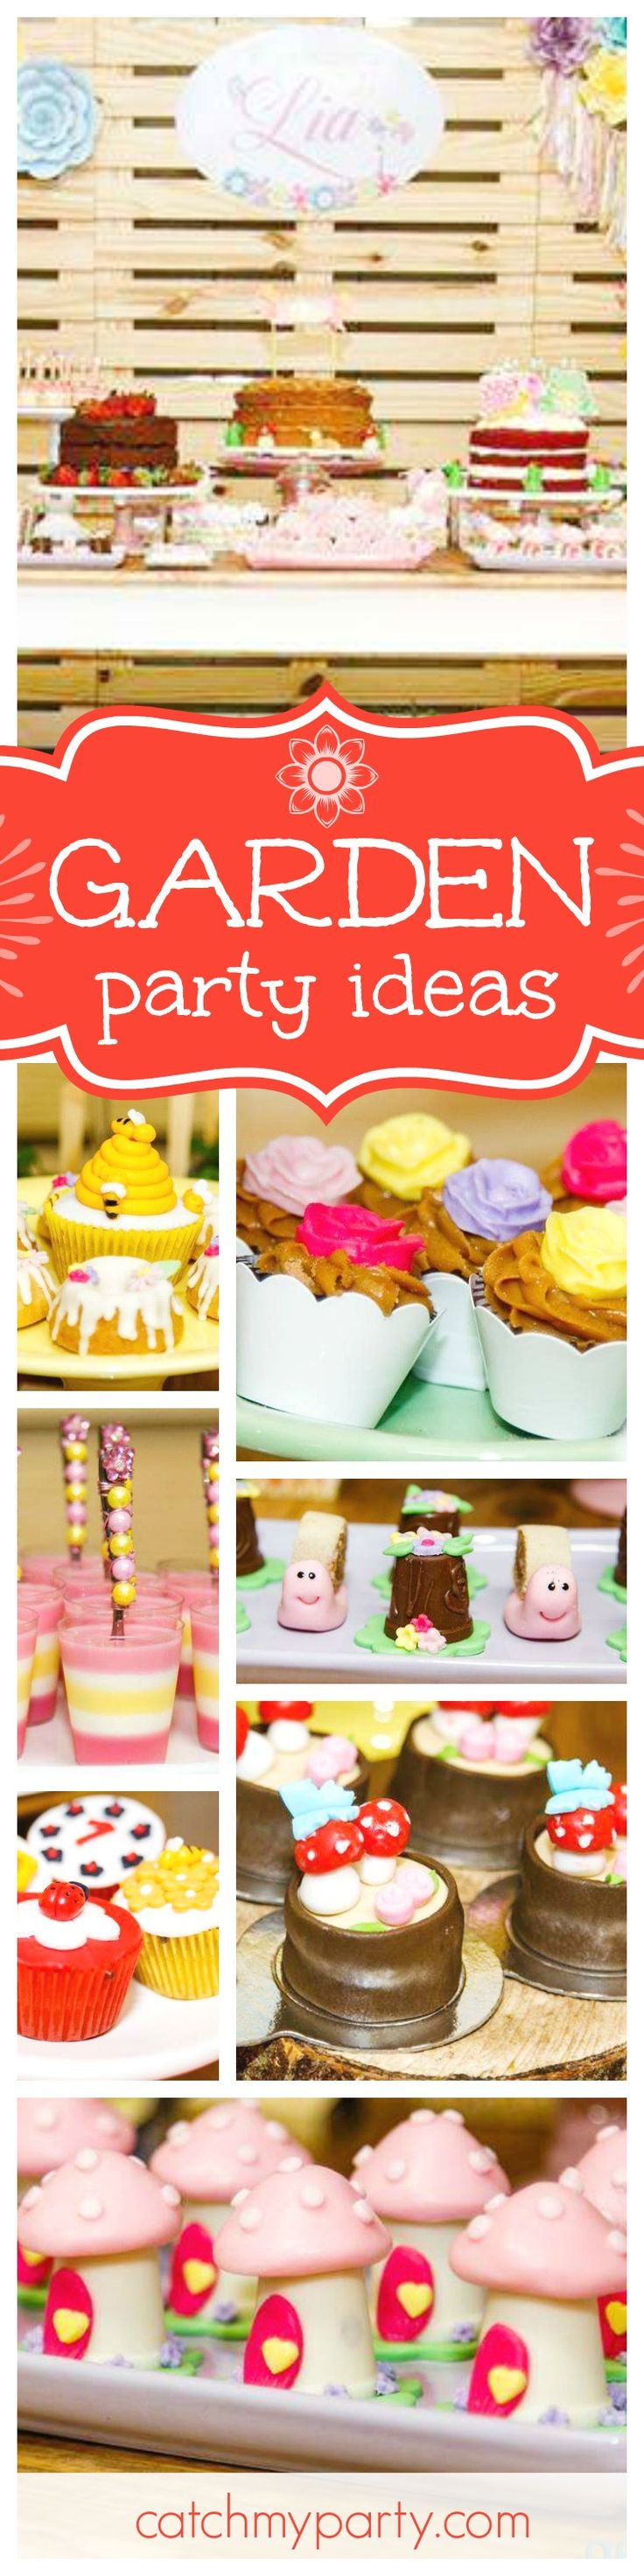 441 best Woodland Party Ideas images on Pinterest | Birthday party ...